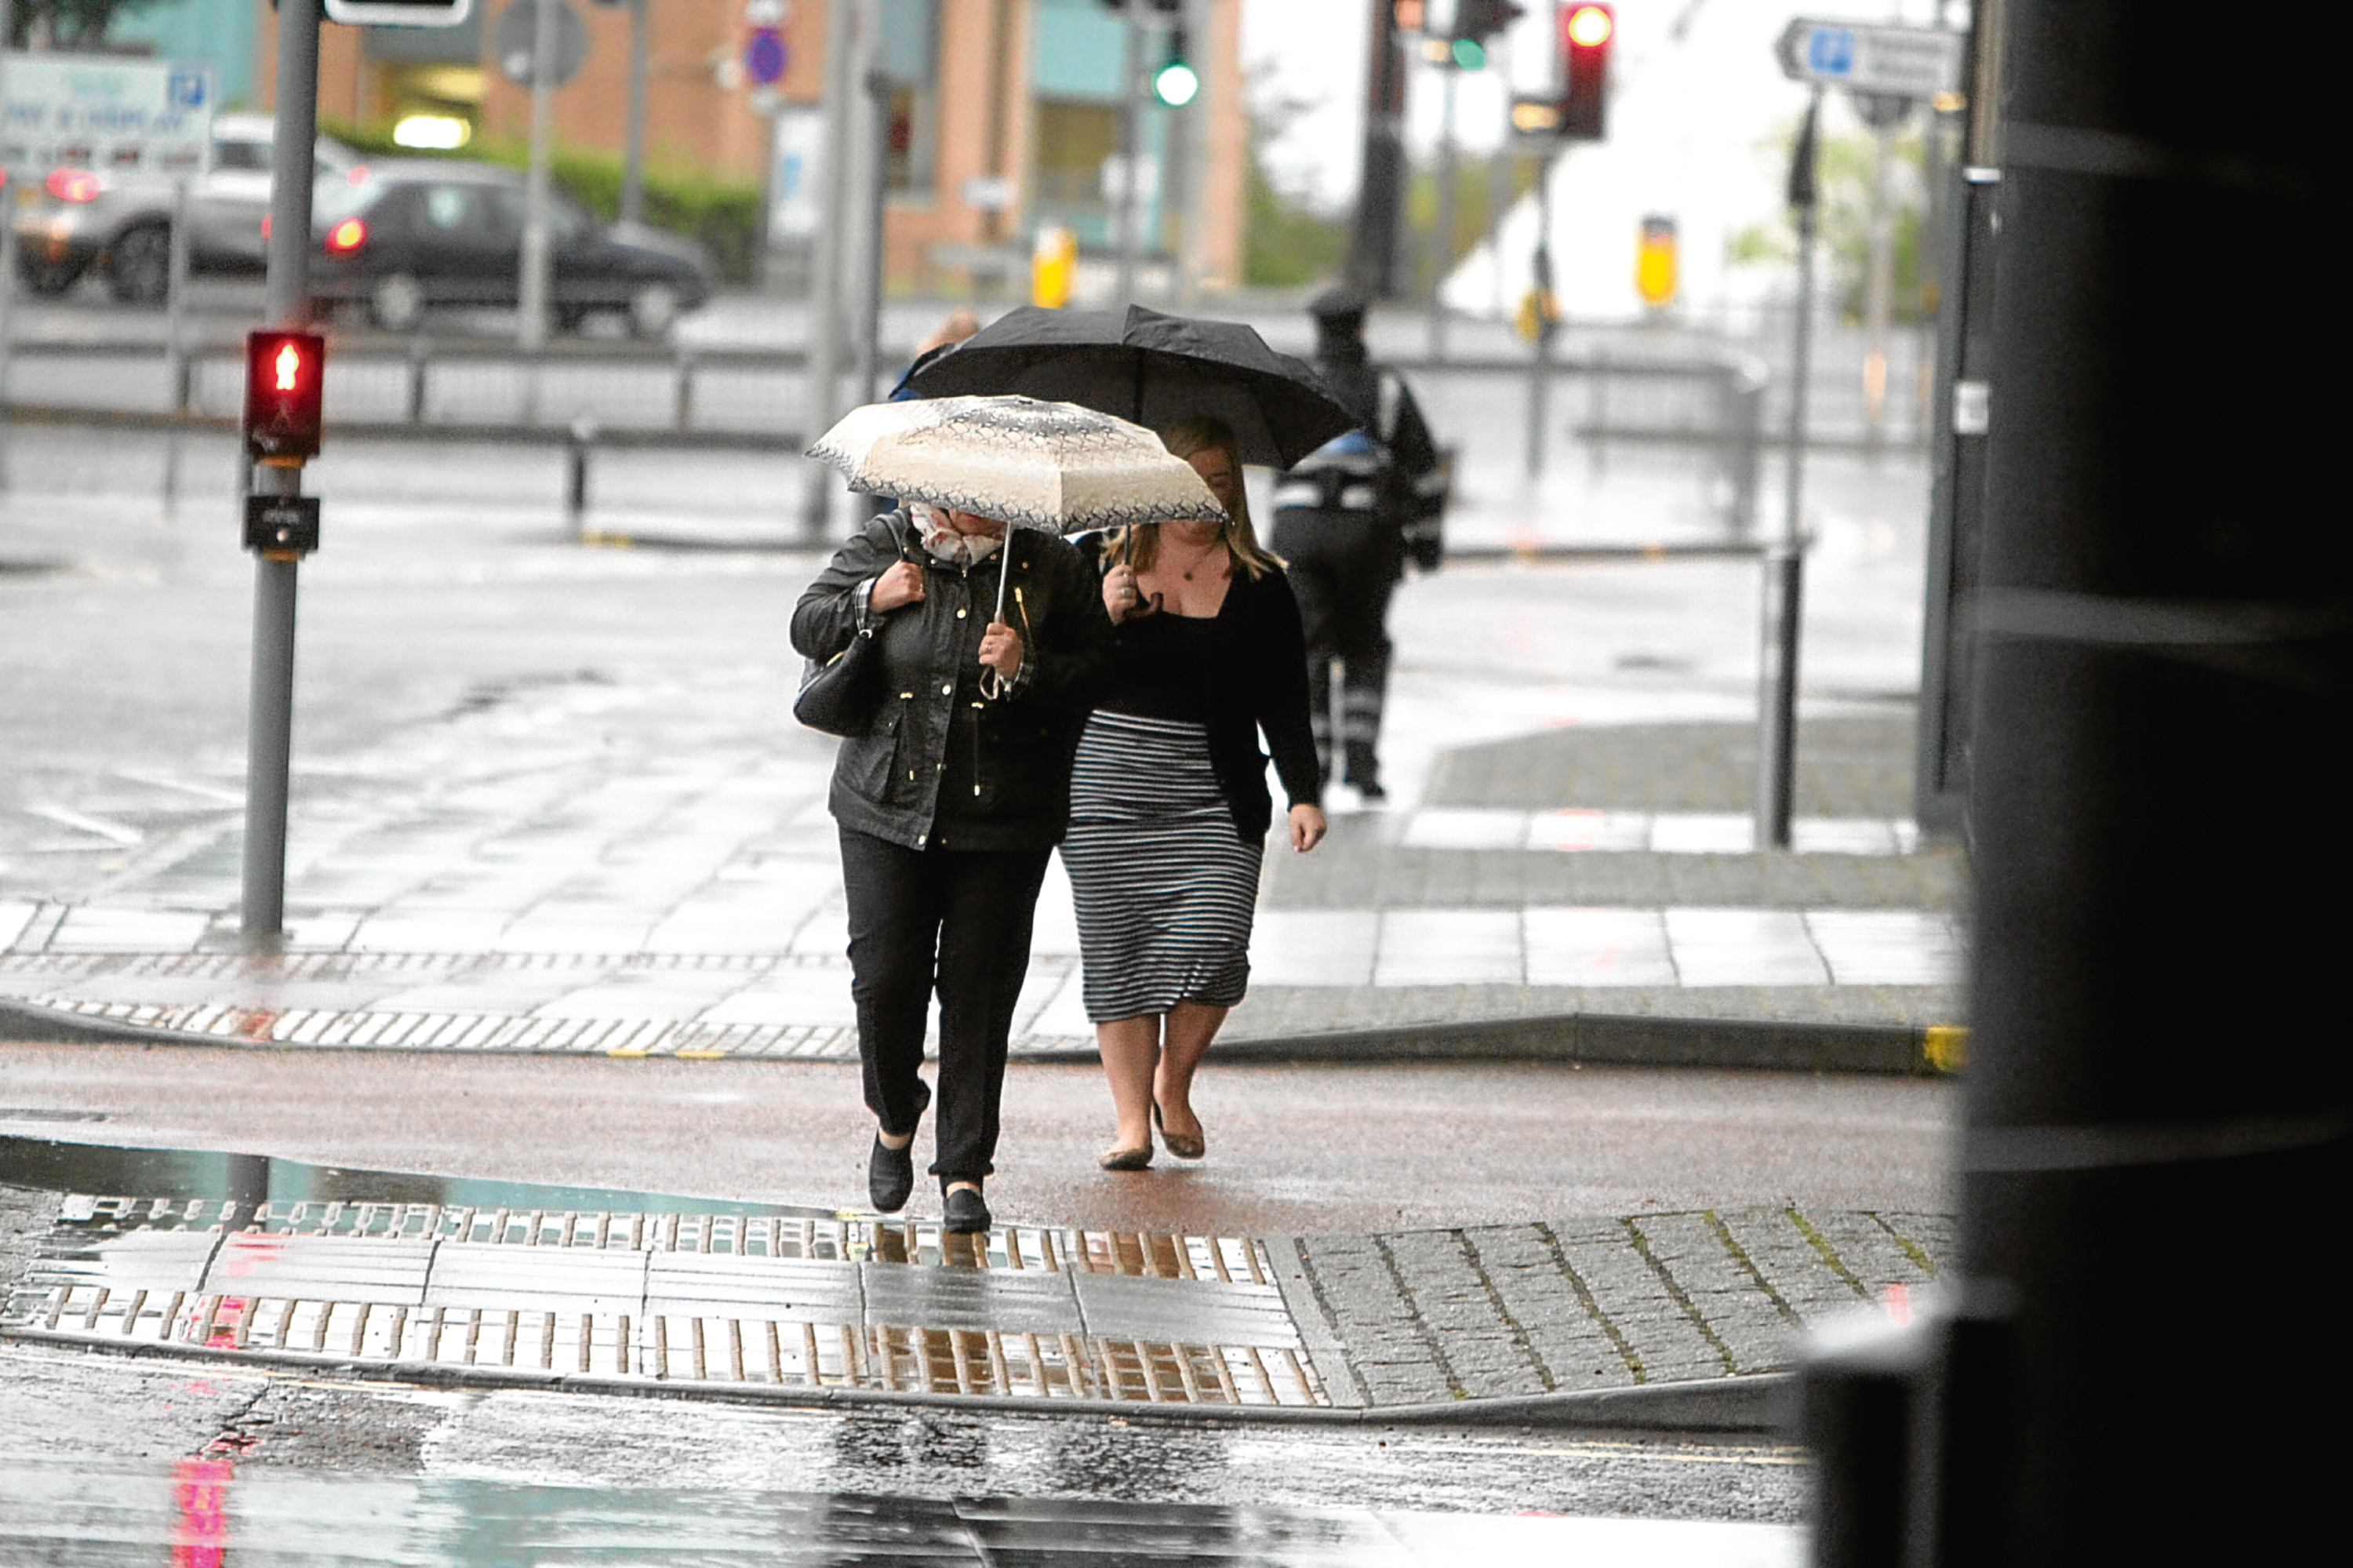 Folk in the city centre take shelter from yesterday's wet weather.